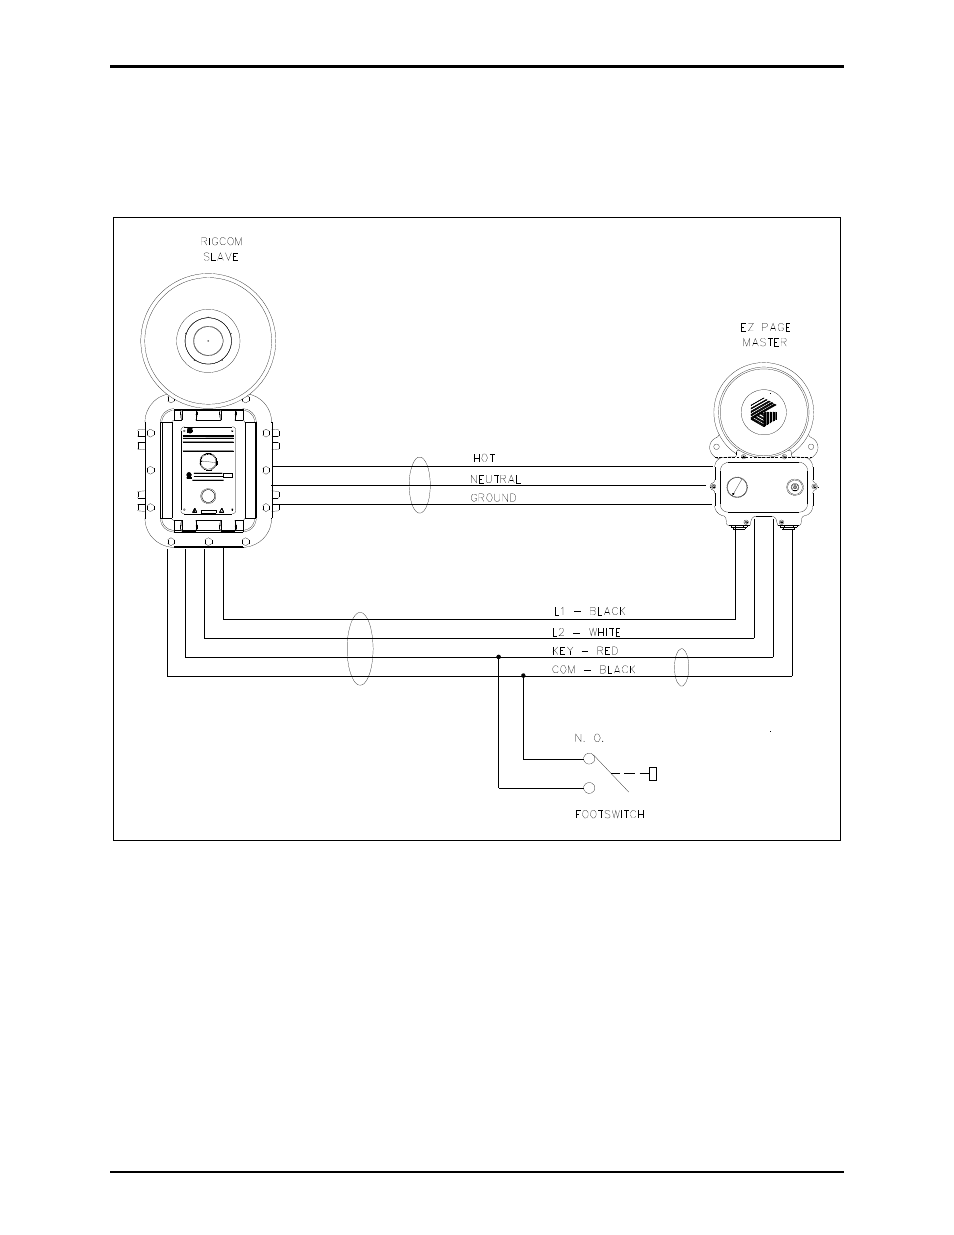 Optional footswitch interface, Figure 7. footswitch ... on servo motor wiring diagram, traffic signal wiring diagram, start stop station wiring diagram, fire alarm pull station wiring diagram, m8 3-pin wiring diagram,